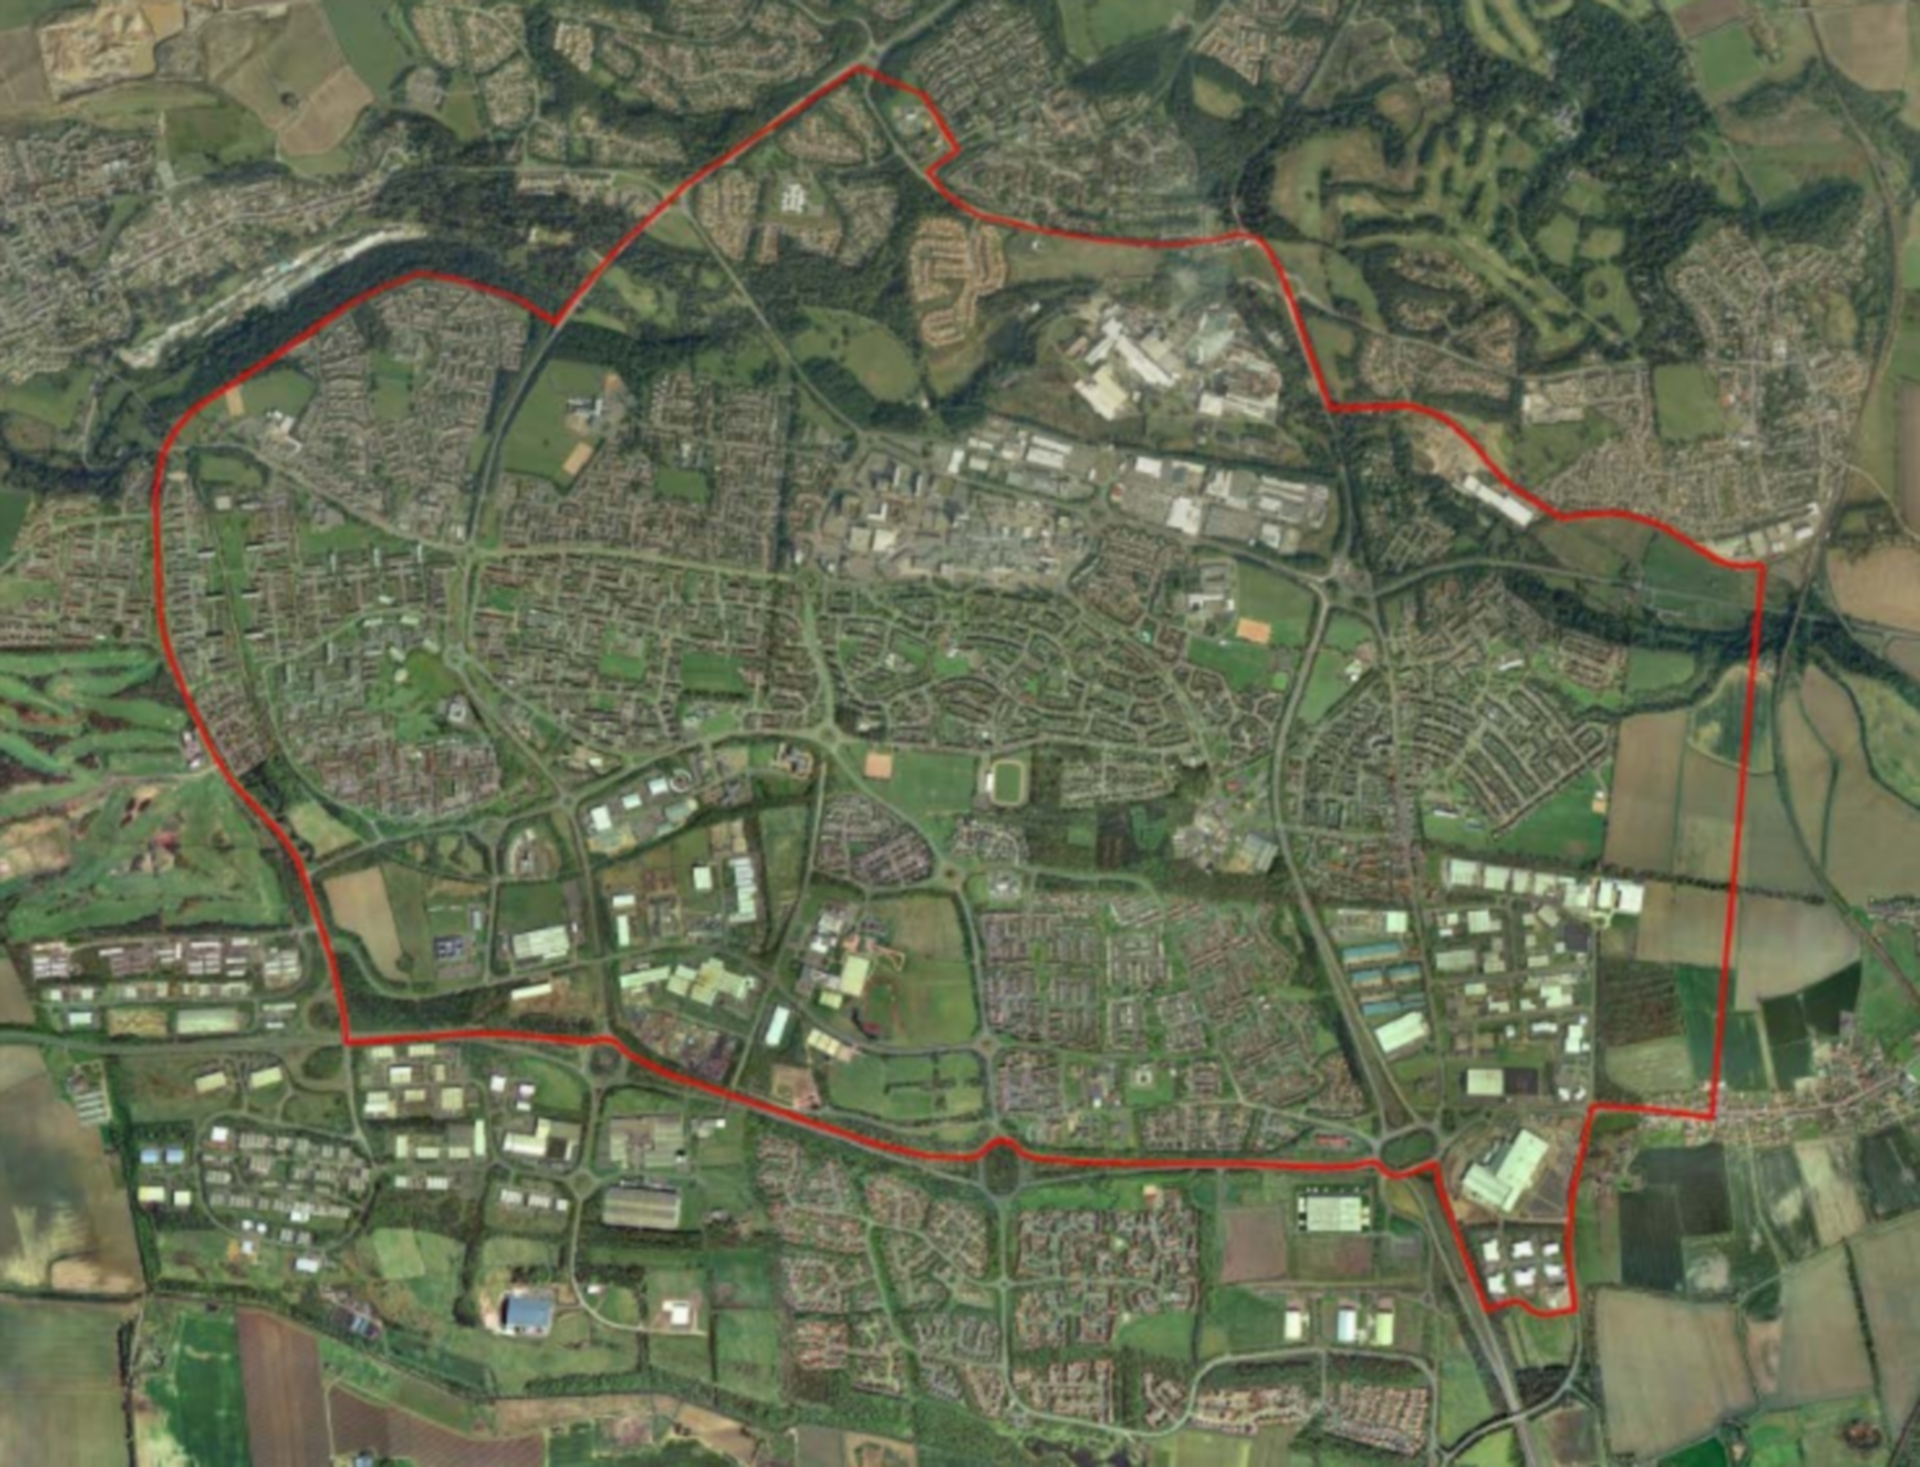 An aerial view of the area of Glenrothes to be covered by the heating system.